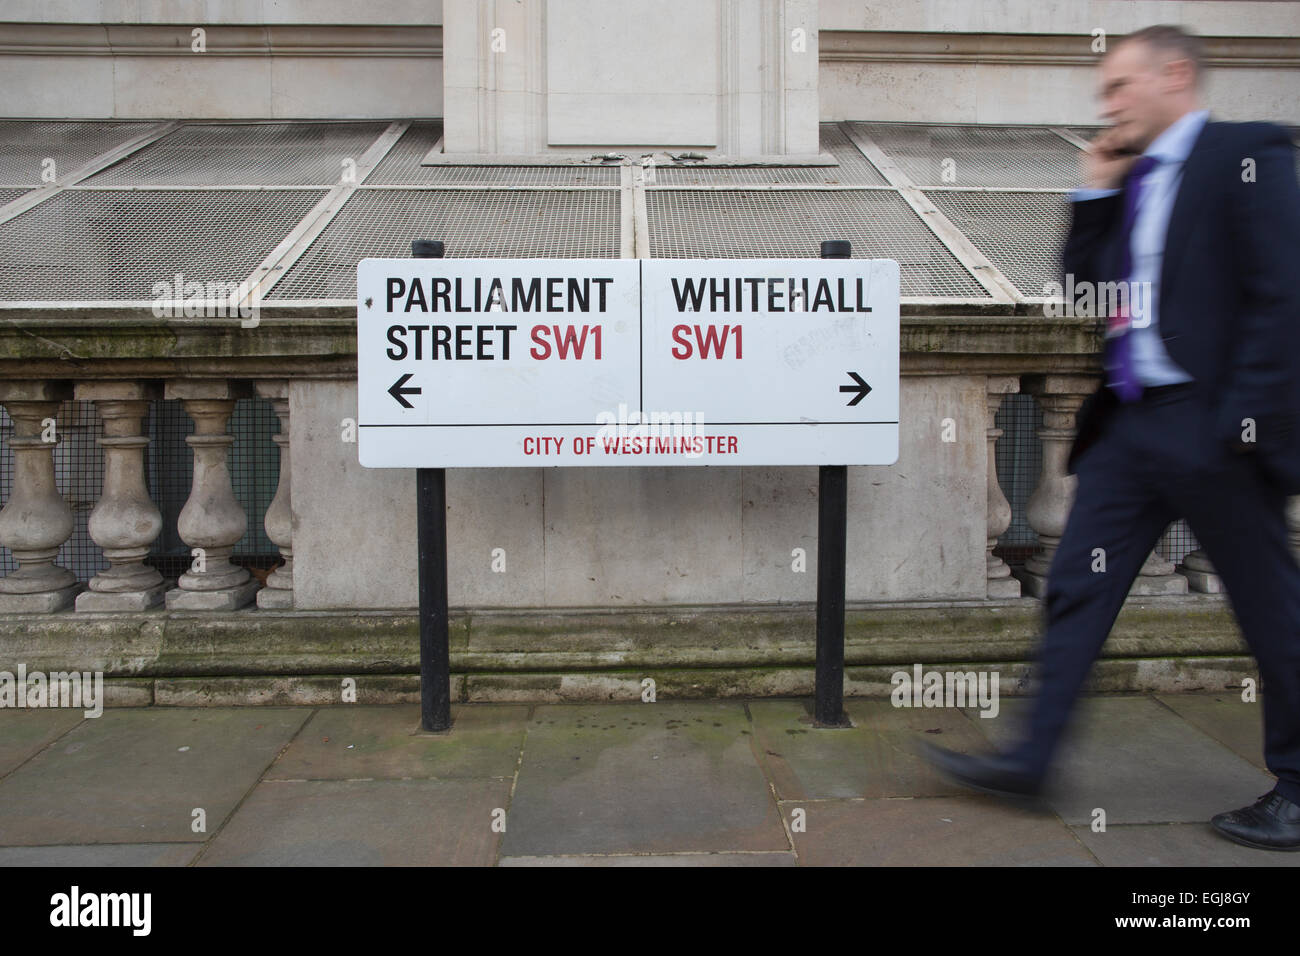 Whitehall and Parliament Street sign, Westminster, Central London, England, UK - Stock Image